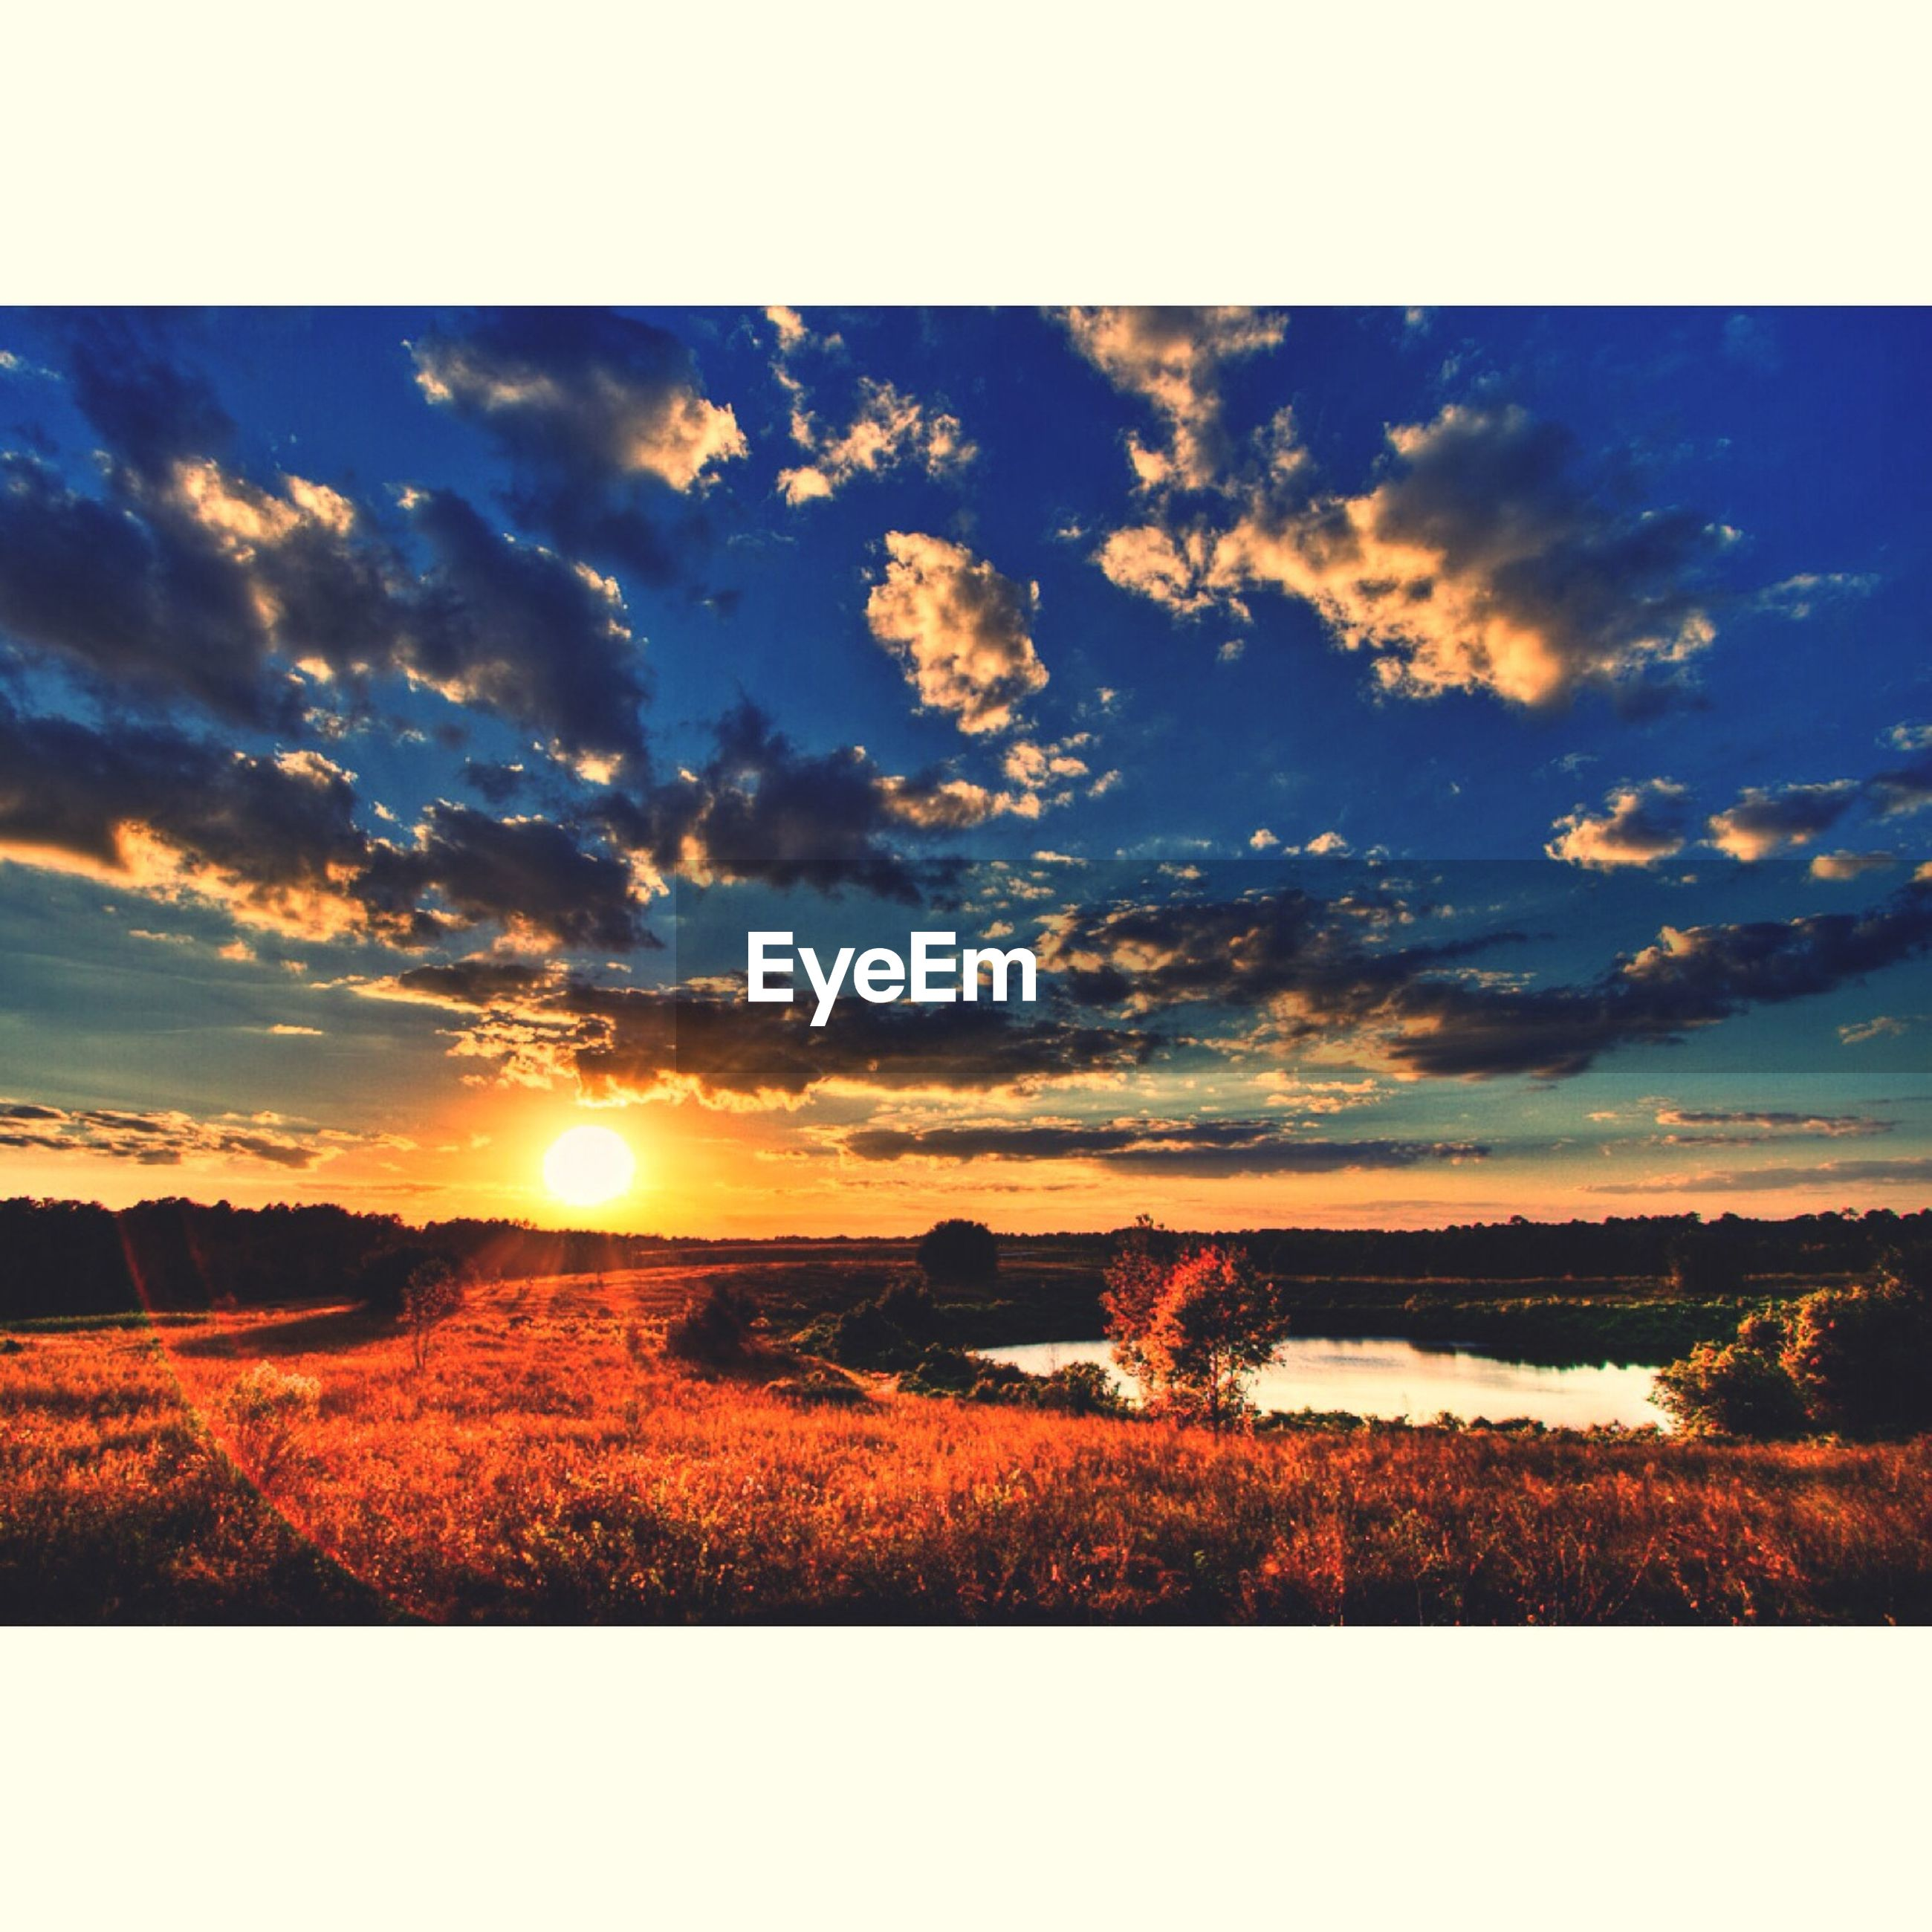 sunset, sky, tranquil scene, scenics, tranquility, beauty in nature, sun, landscape, cloud - sky, nature, transfer print, field, cloud, idyllic, auto post production filter, sunlight, horizon over land, cloudy, rural scene, outdoors